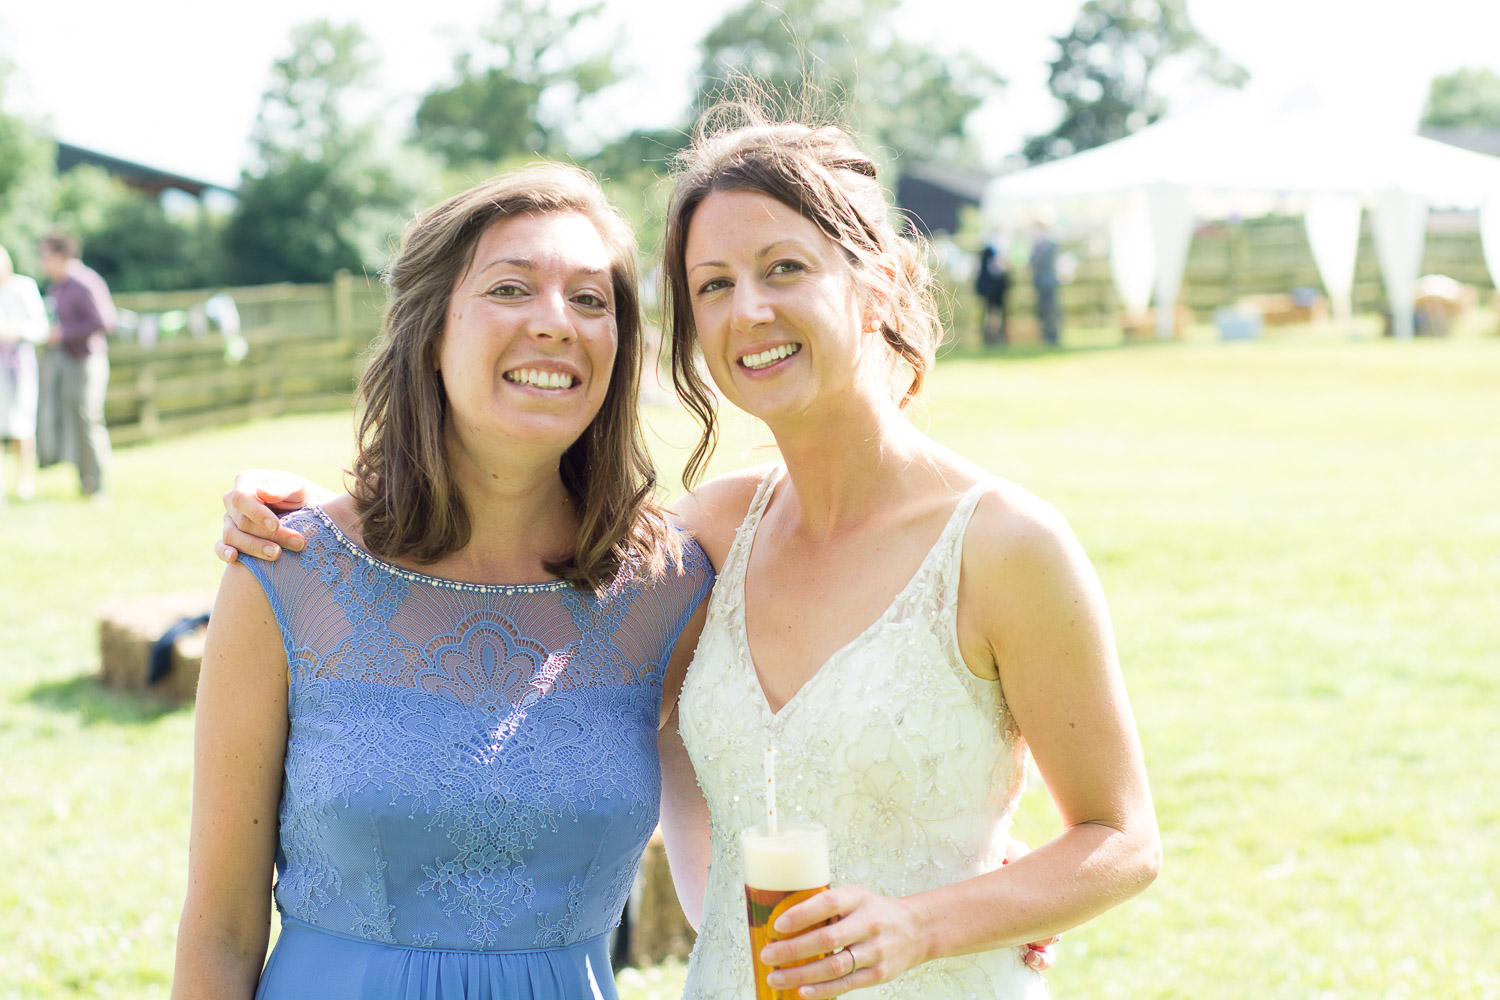 bride and bridesmaid at wedding yurts wedding in leicestershire